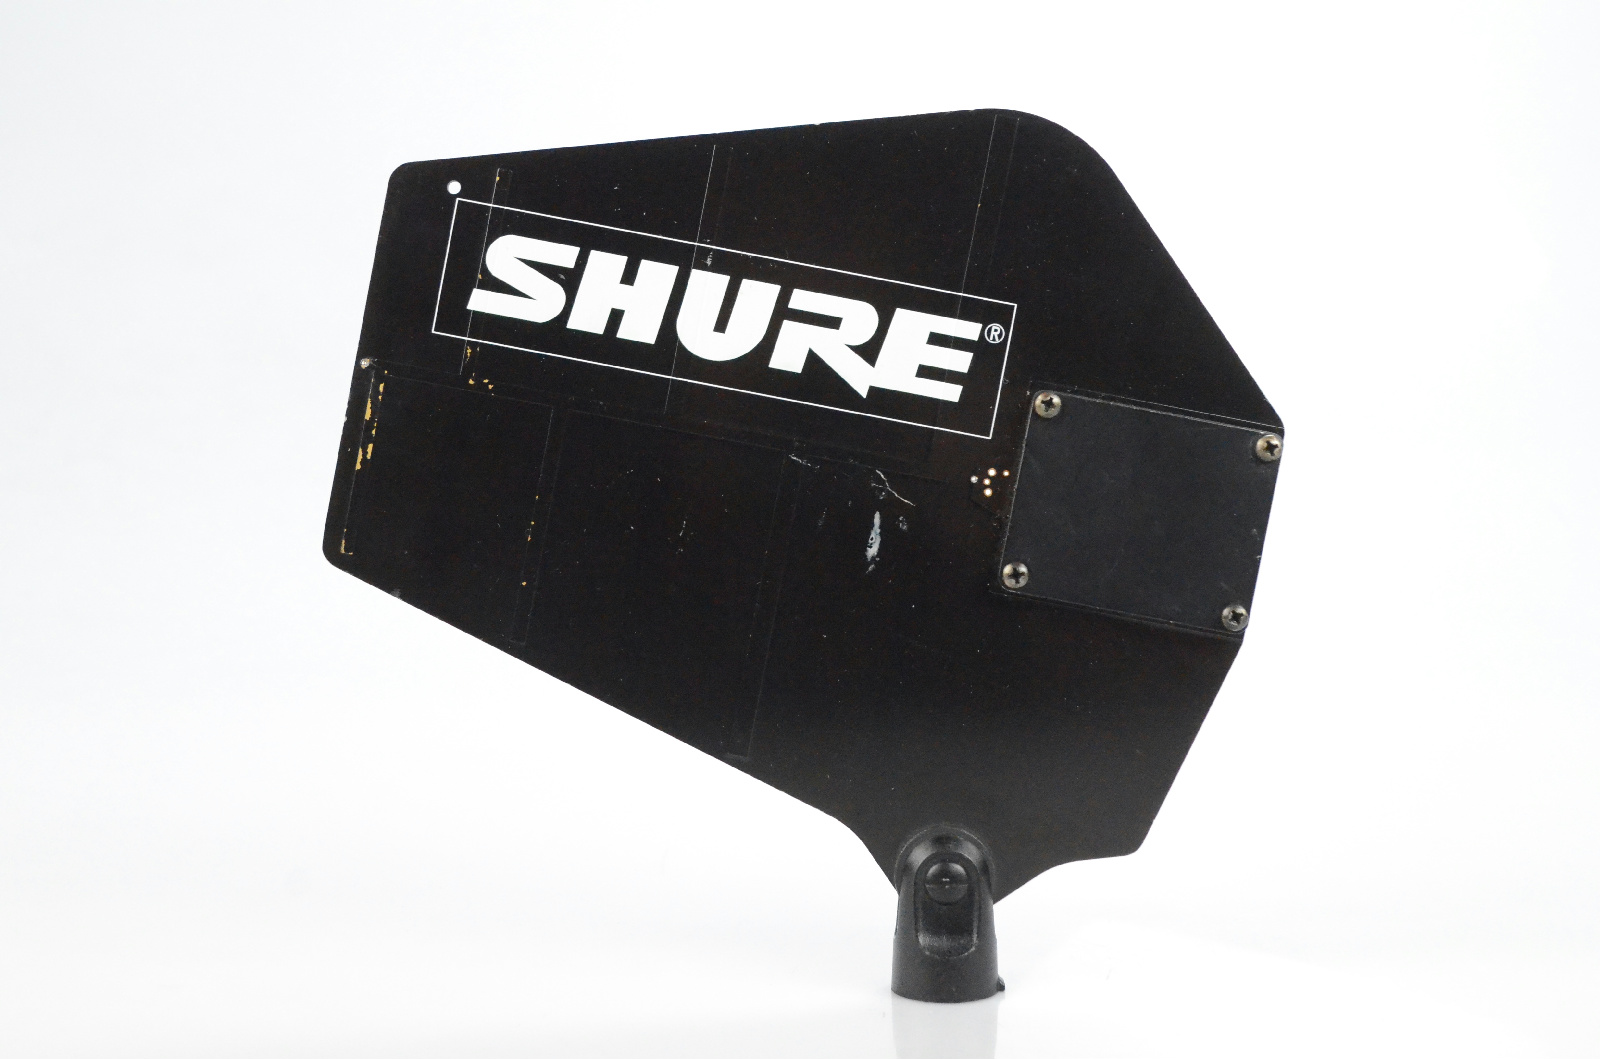 Shure UA870A Active UHF Wireless Antenna 782-810 MHZ Owned by Maroon 5 #33490